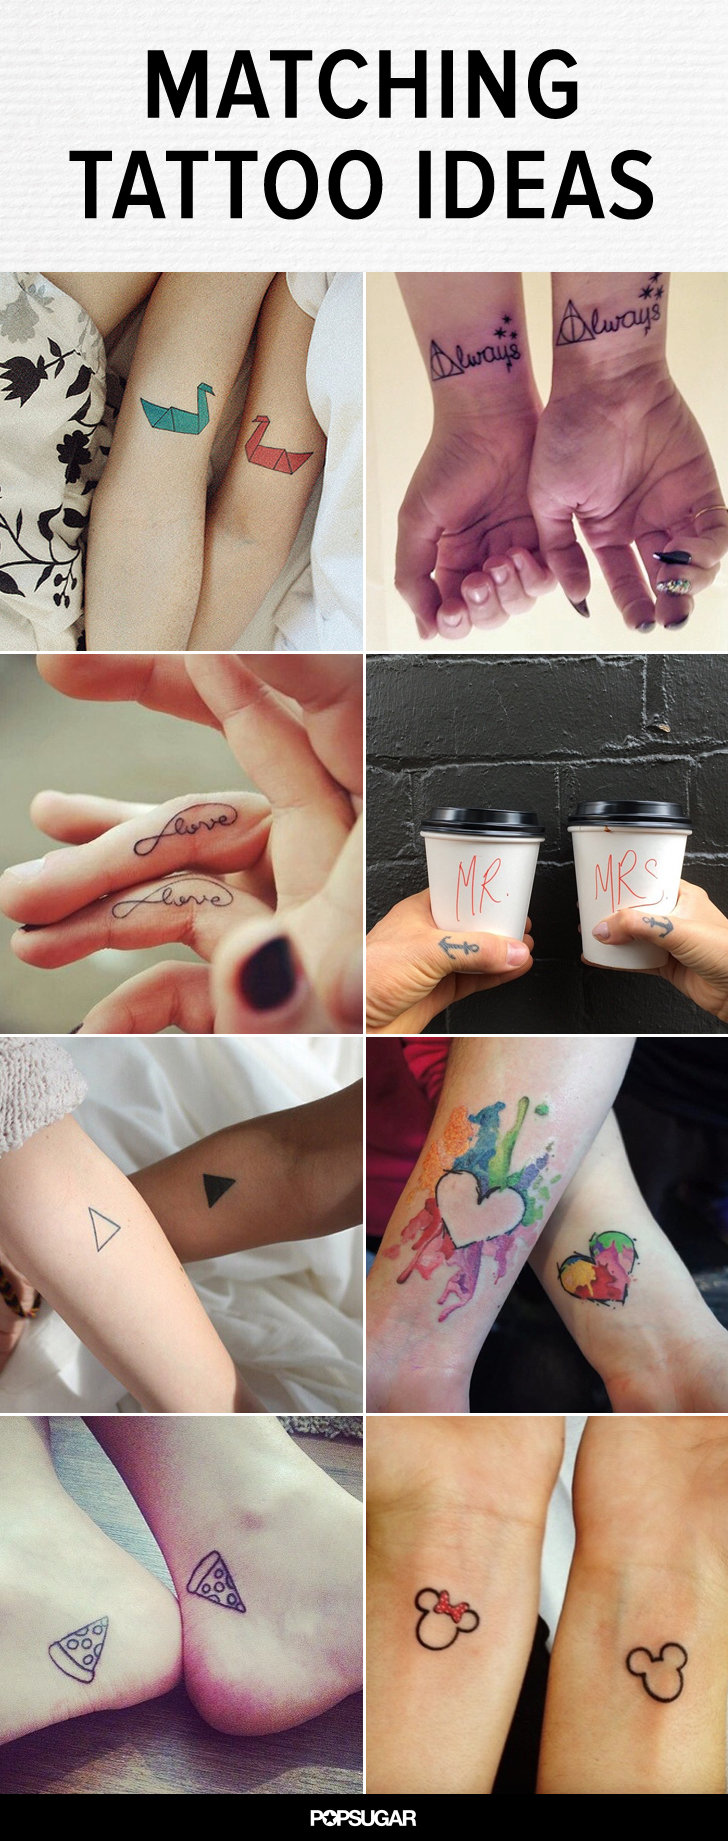 33 matching tattoos for couples who are in it to win it af7b8b4c c483 4d26 bba4 4d6be9e8ca45 original